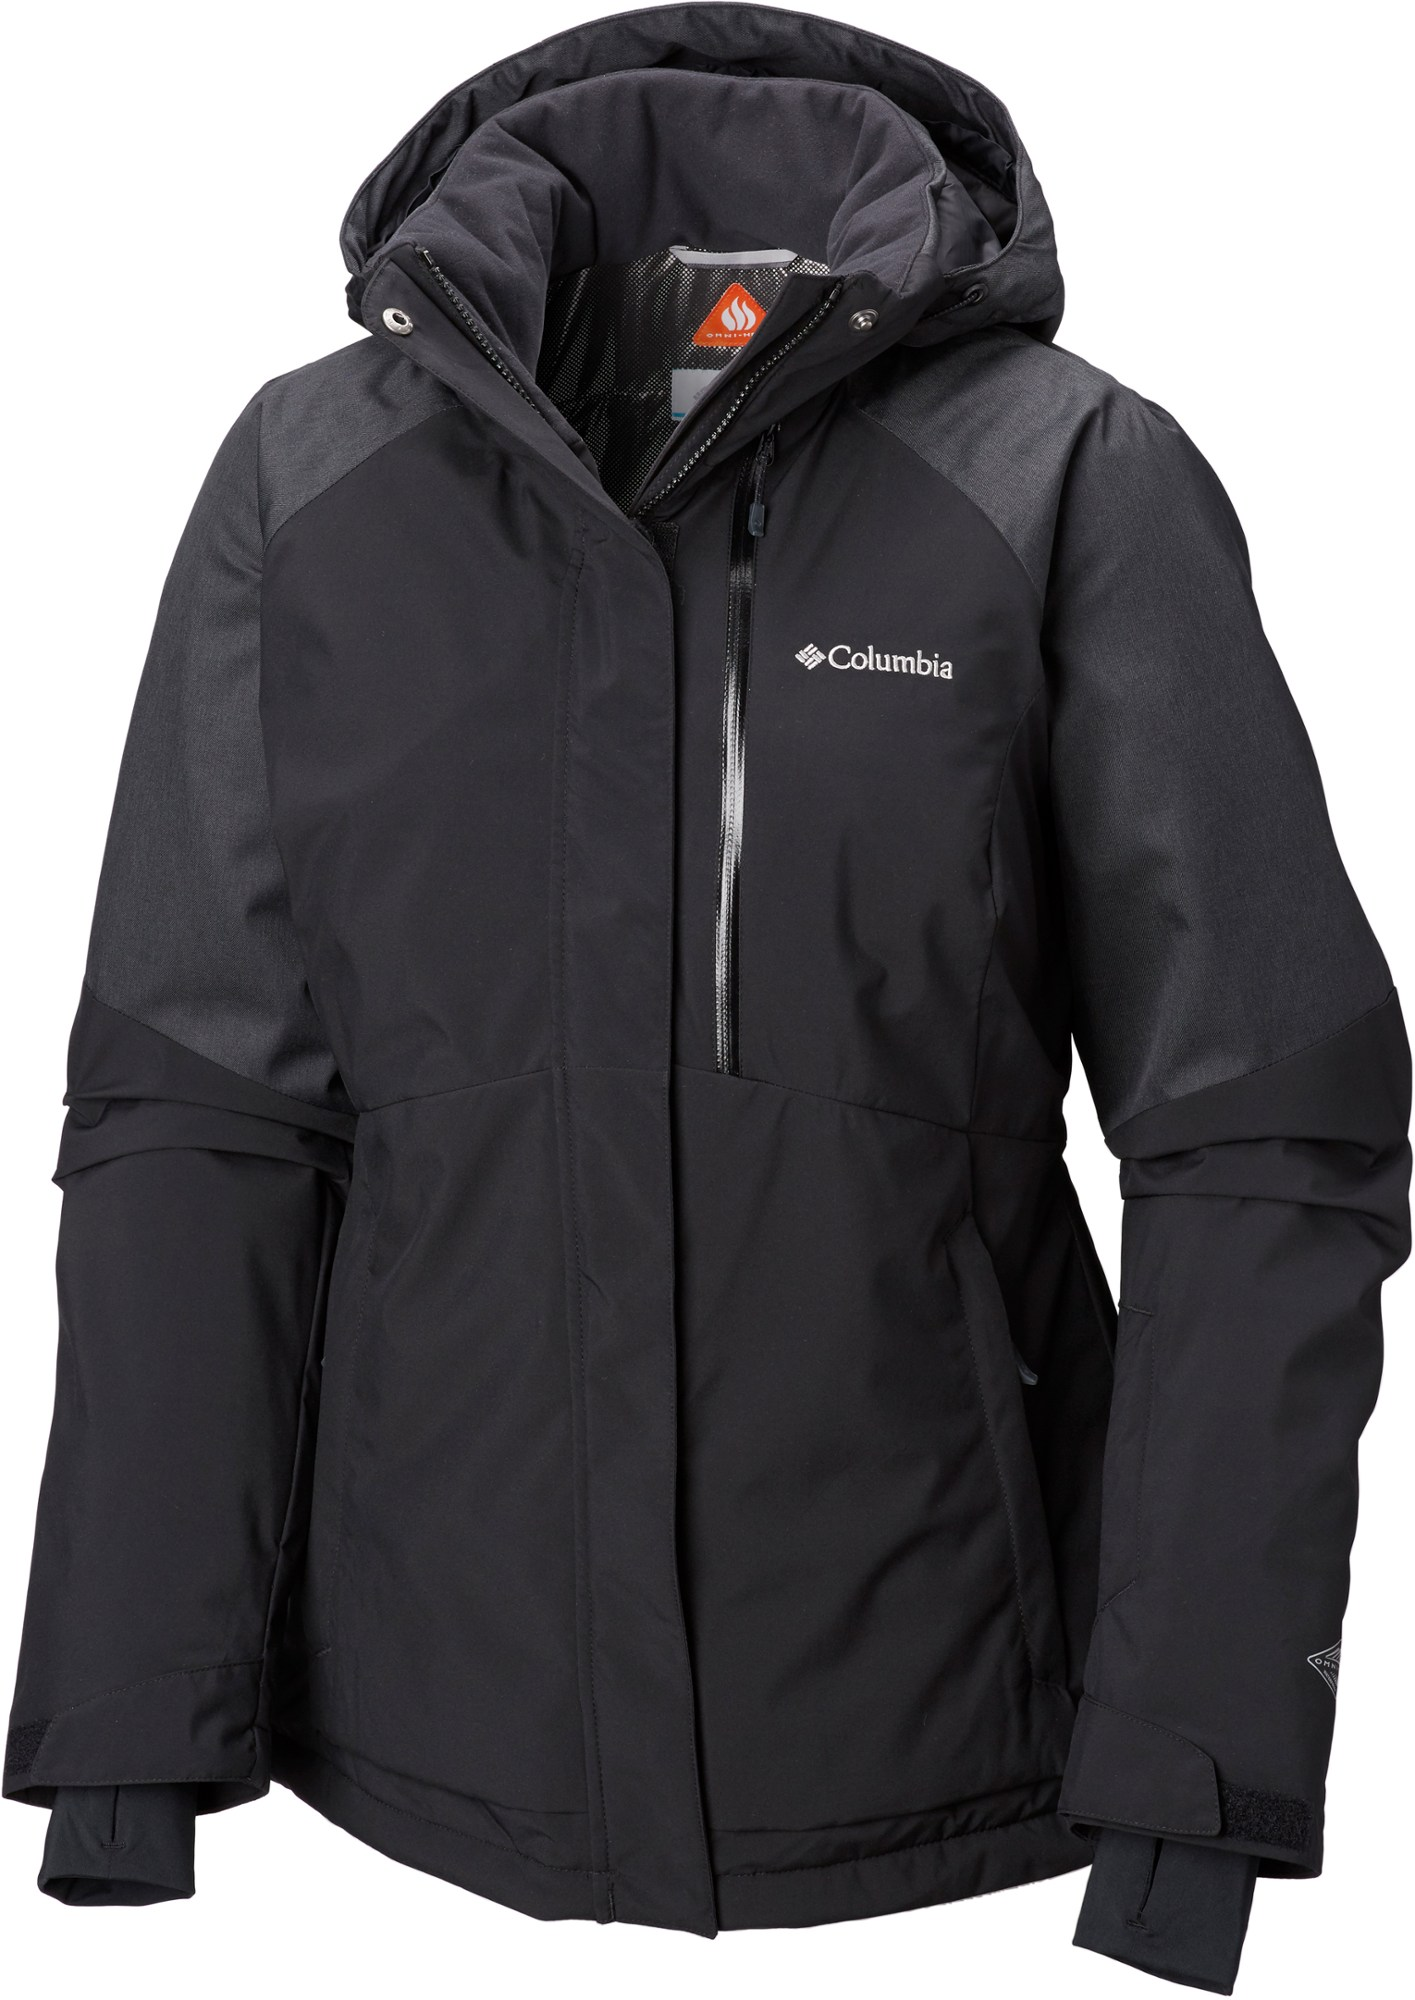 Columbia Wildside Insulated Jacket - Women's